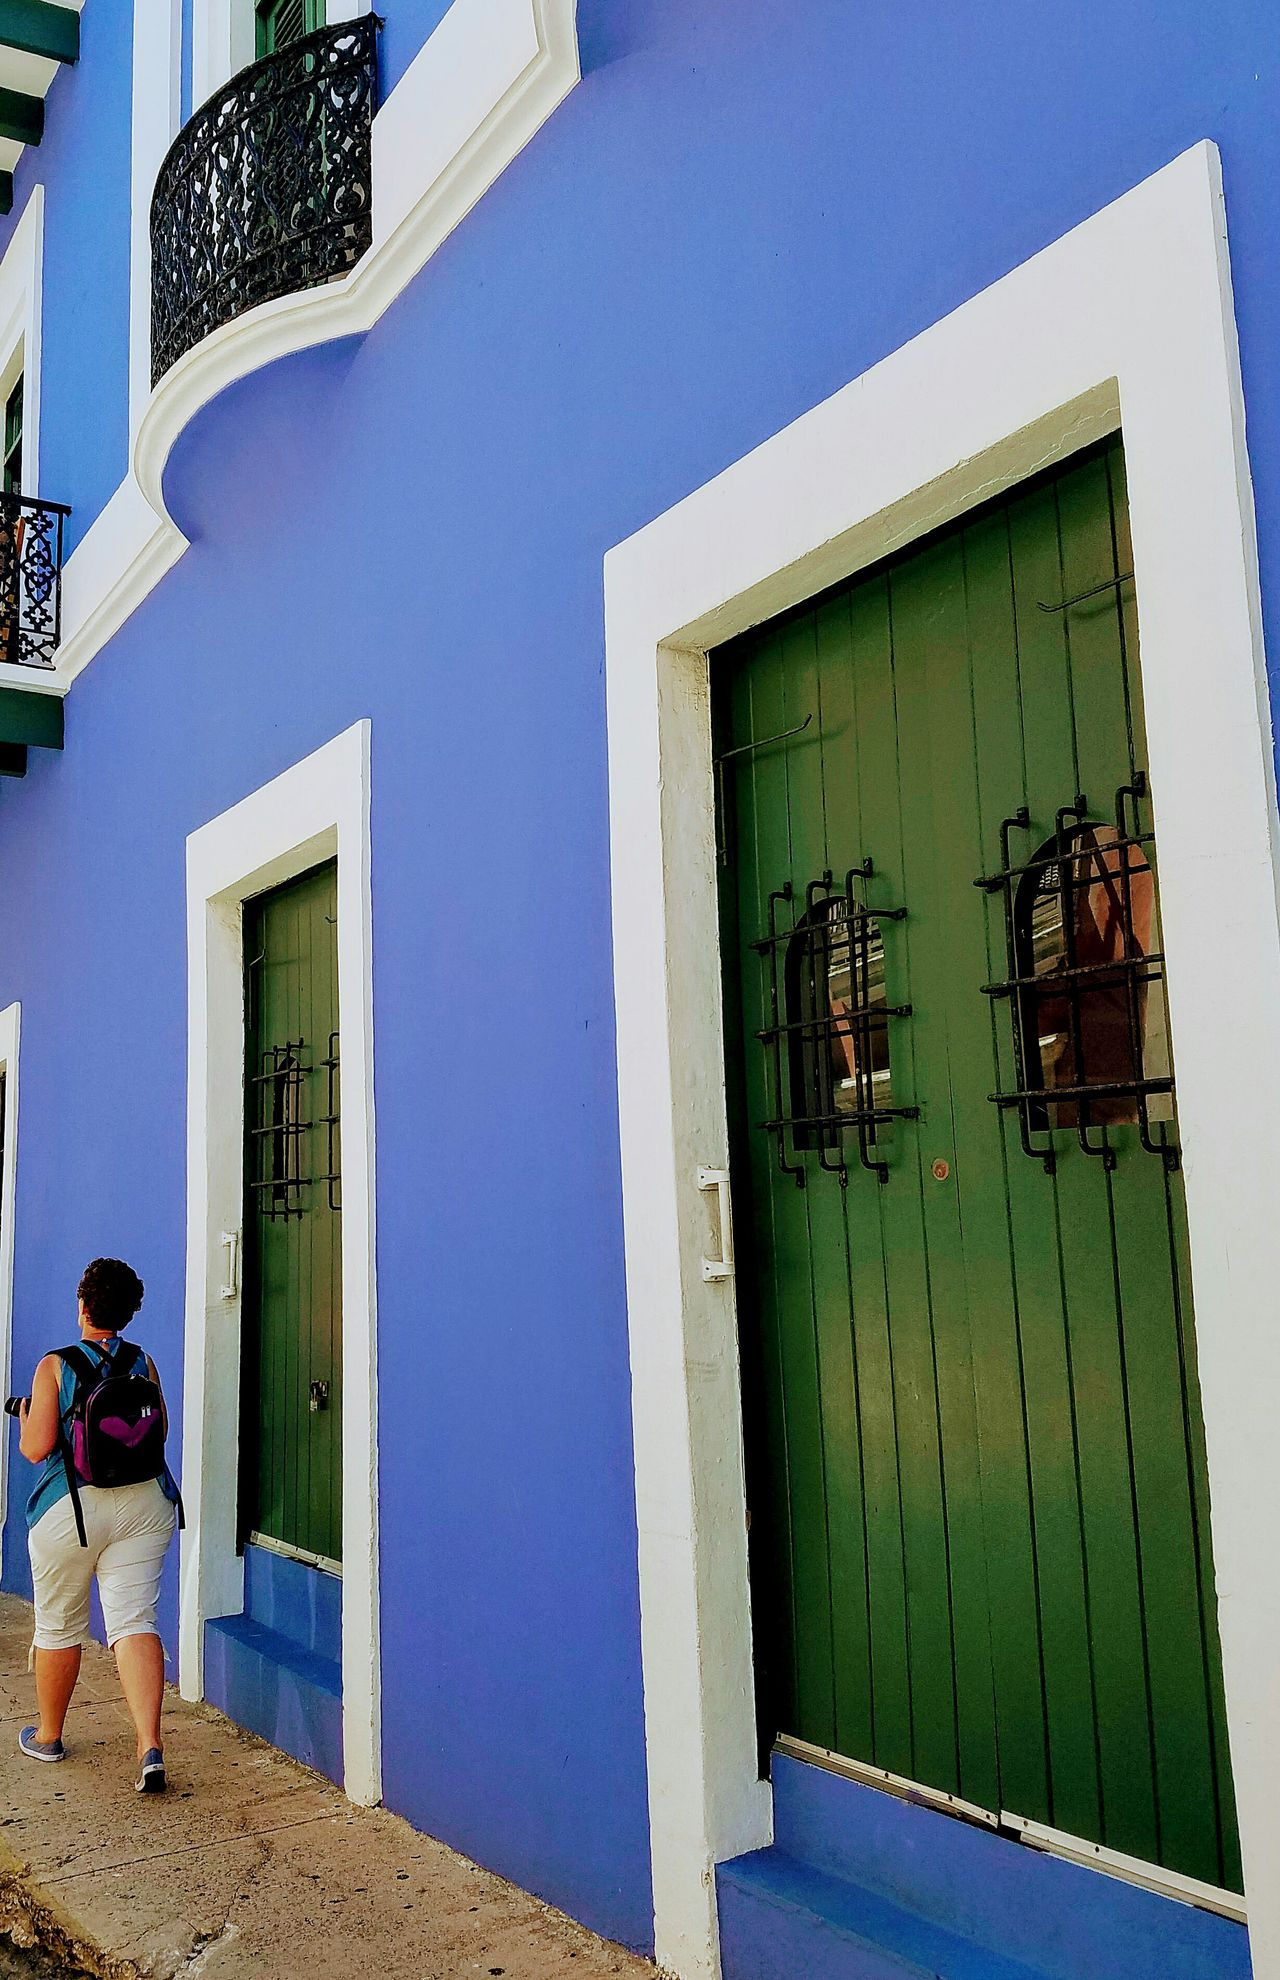 The Street Photographer - 2017 EyeEm Awards Minimalist Architecture The Architect - 2017 EyeEm Awards San Juan PR Architecture Light And Shadow Colors Of My City Perspective Lines And Angles Simplicity Simple Elegance Popular Door Minimalism Color Block Blue Urban Exploration